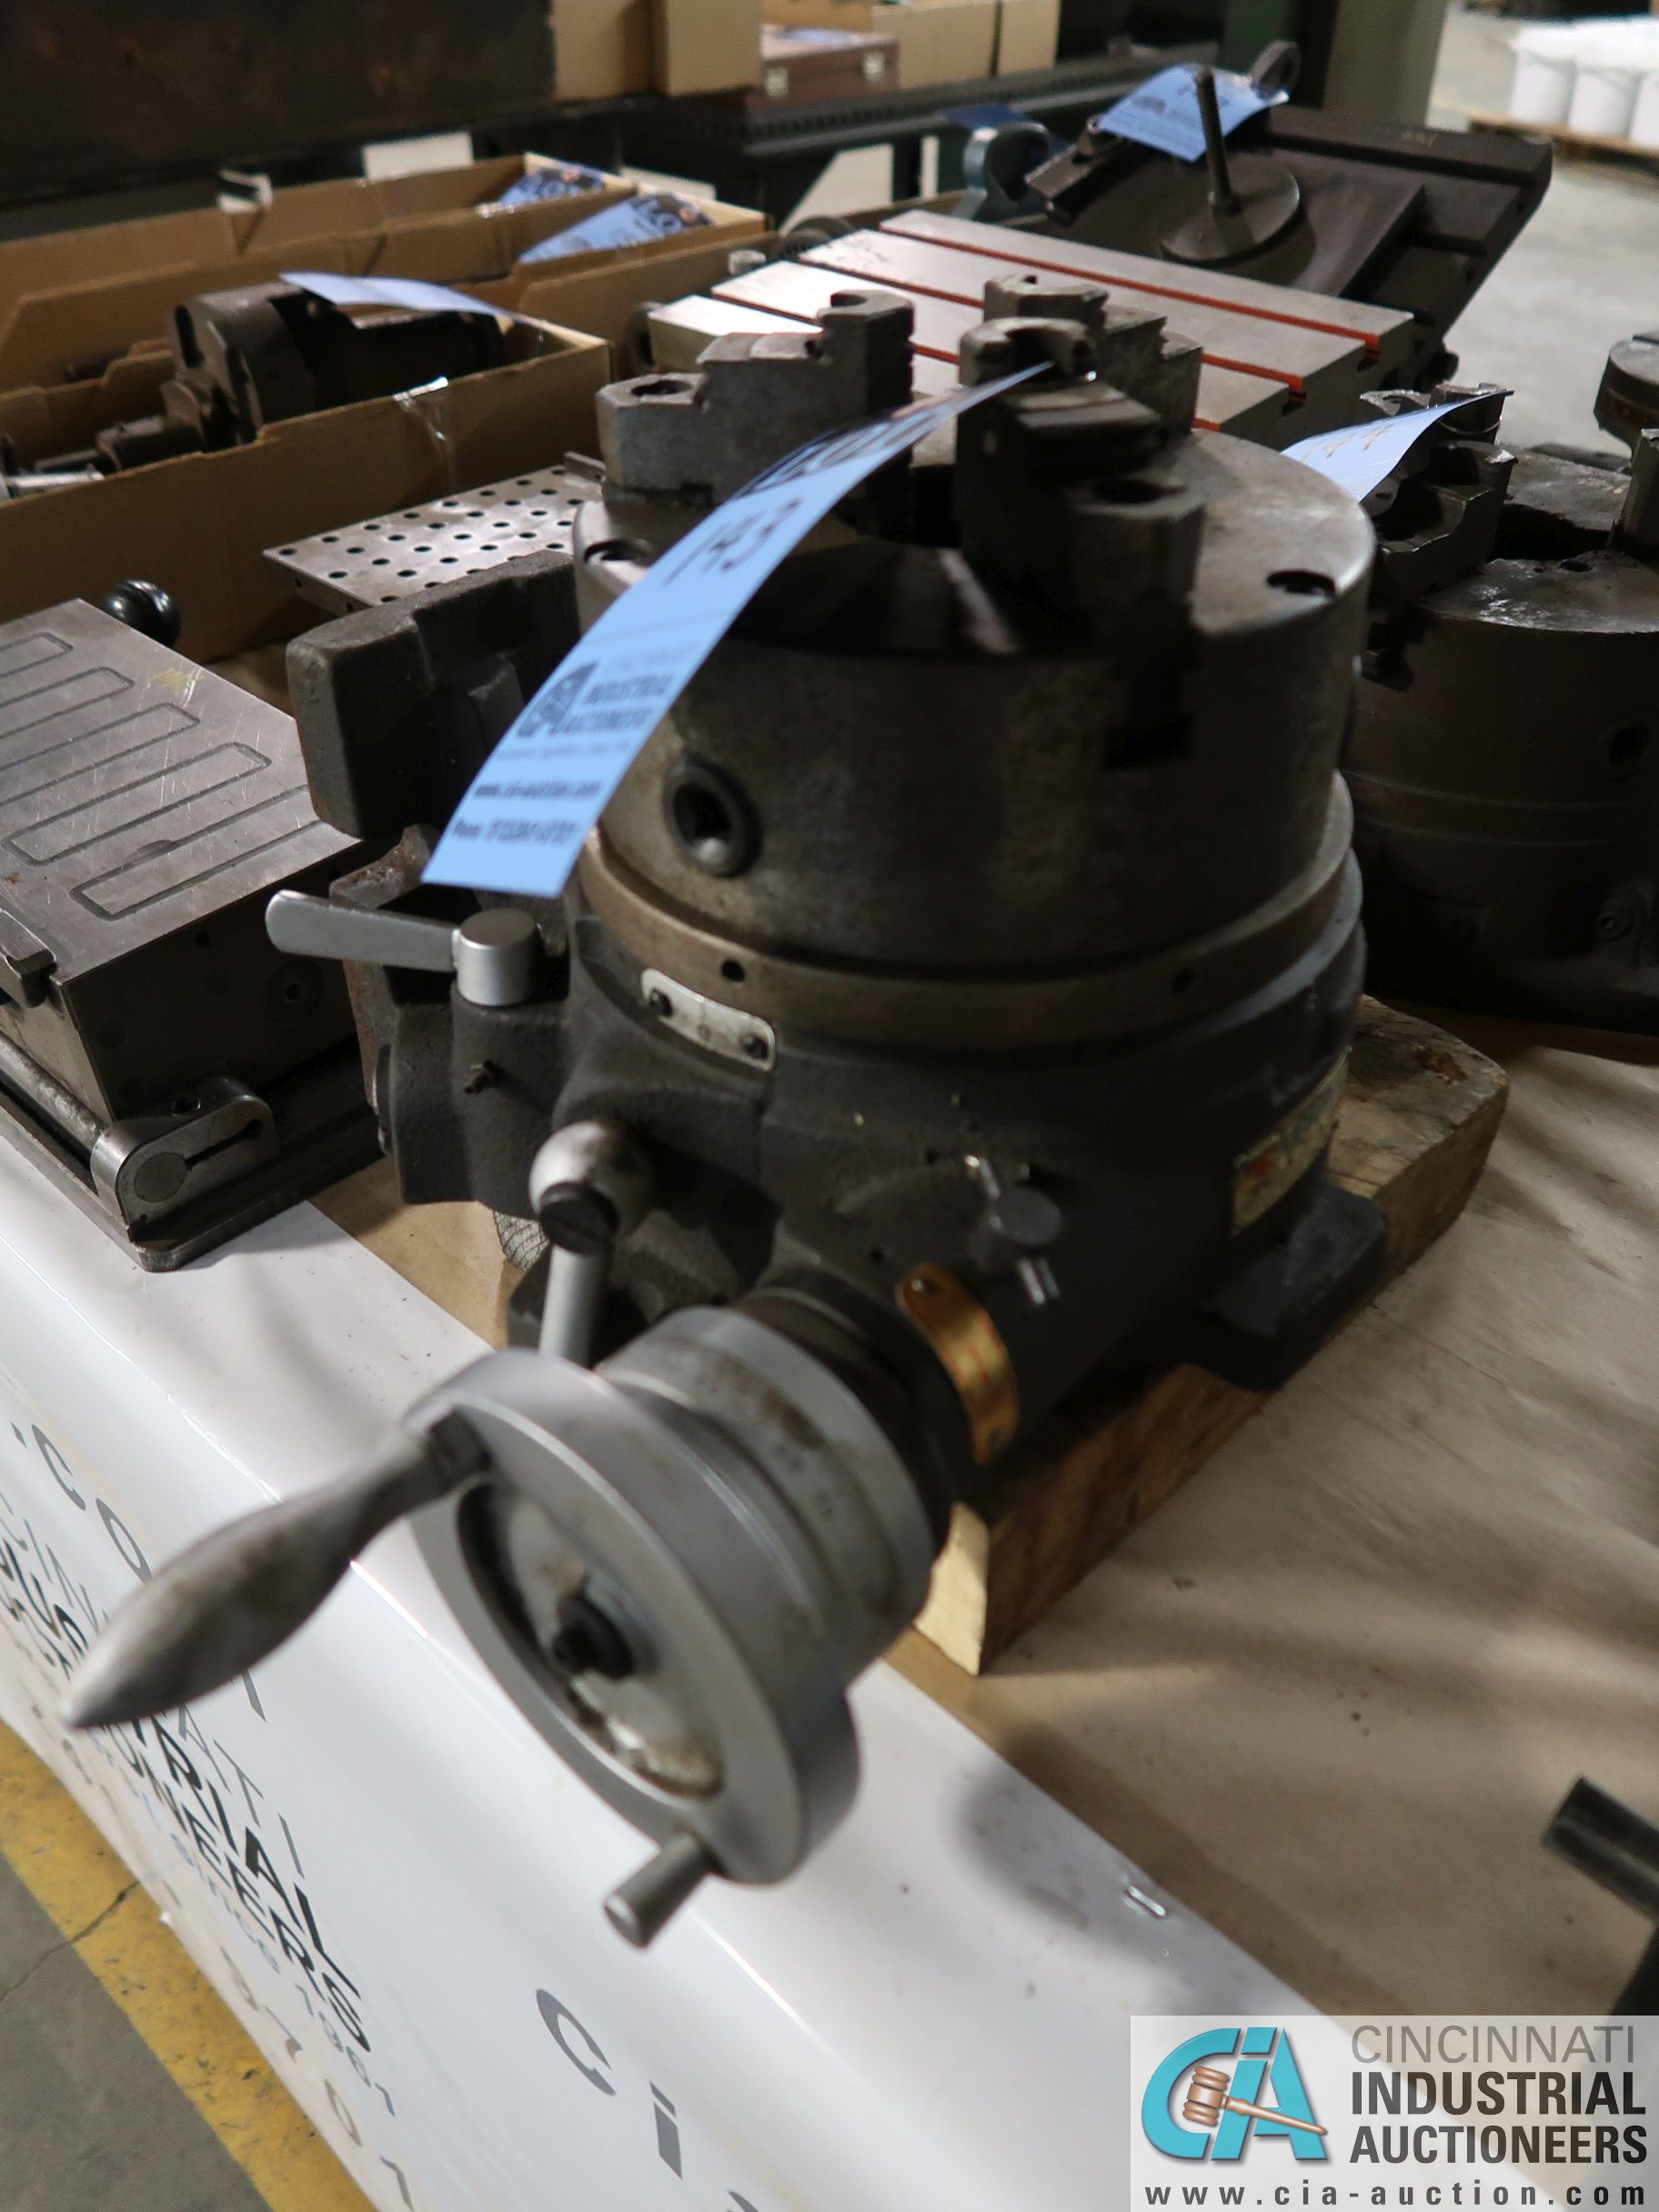 "8"" VERTEX INDEXING SUPER SPACER WITH THREE-JAW CHUCK - Image 2 of 2"